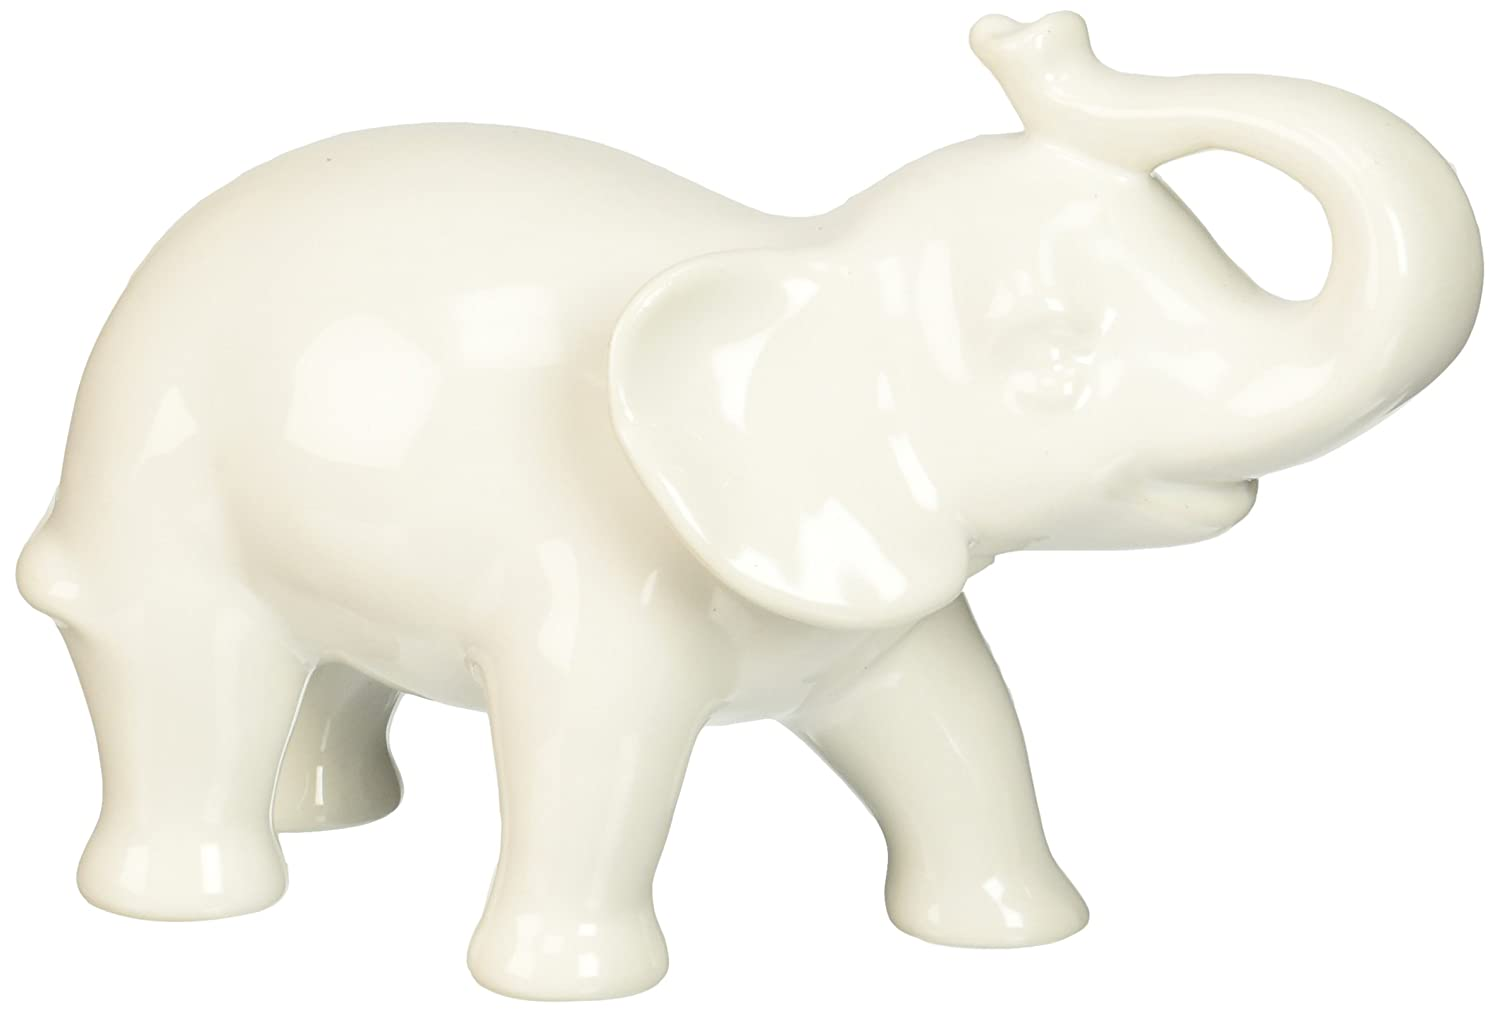 Amazon.com: Abbott Collection Ceramic Elephant Figurine, White ...